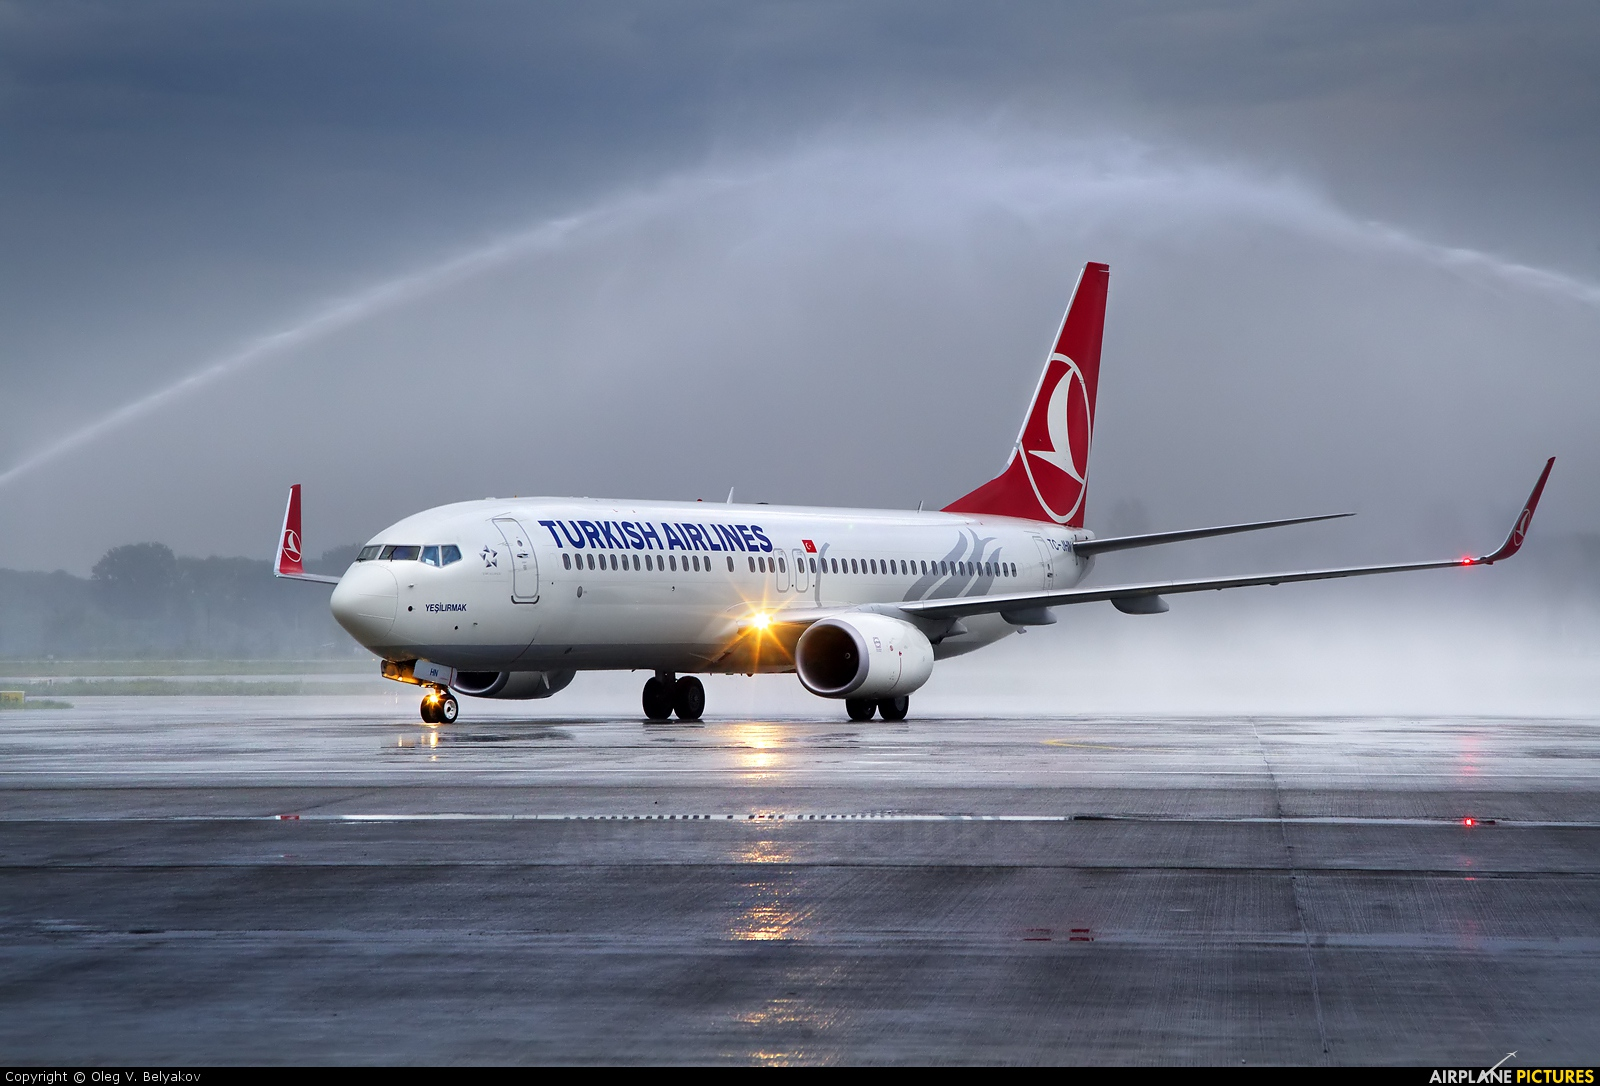 Turkish Airlines TC-JHN aircraft at Kyiv - Borispol